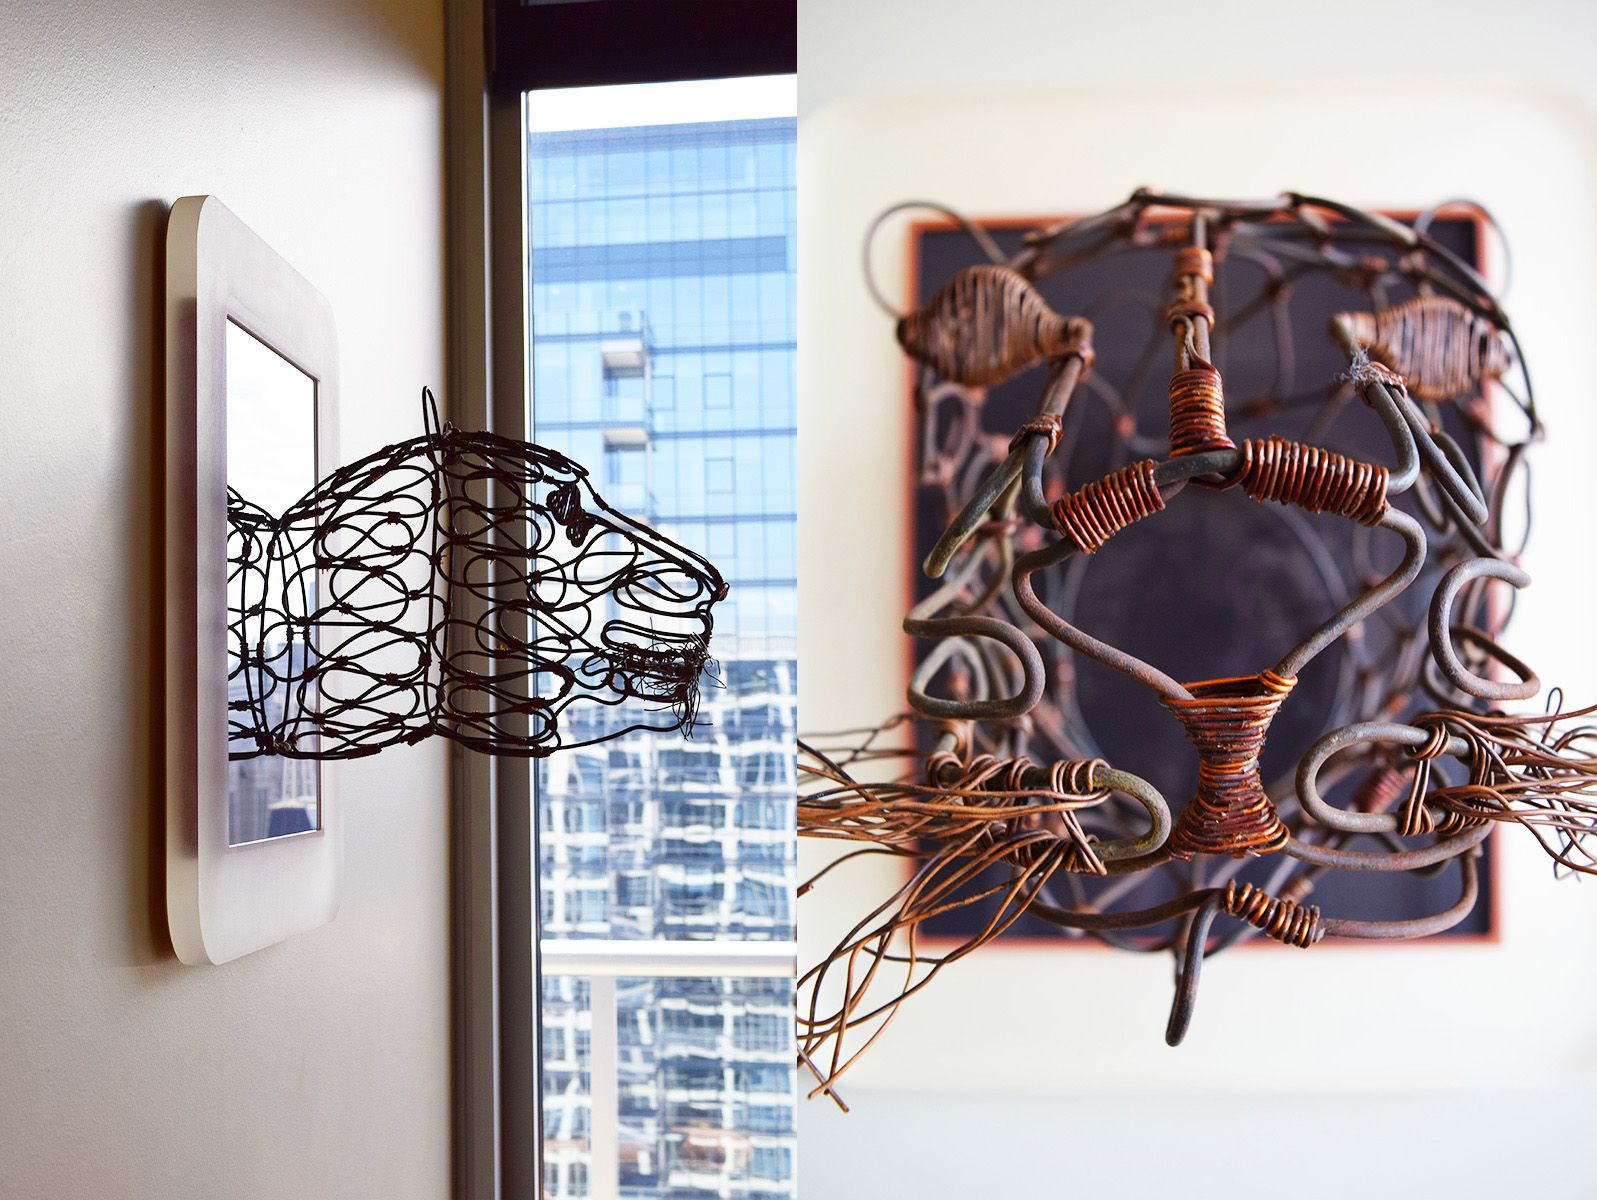 Wire Art Framed Basket Wiring Center Circuitwriter Conductive Pencircuitwriterpenledhookup1 See How We Thought Outsidetheglass To Frame This One Of A Kind Rh Pinterest Com Round Decorative Baskets